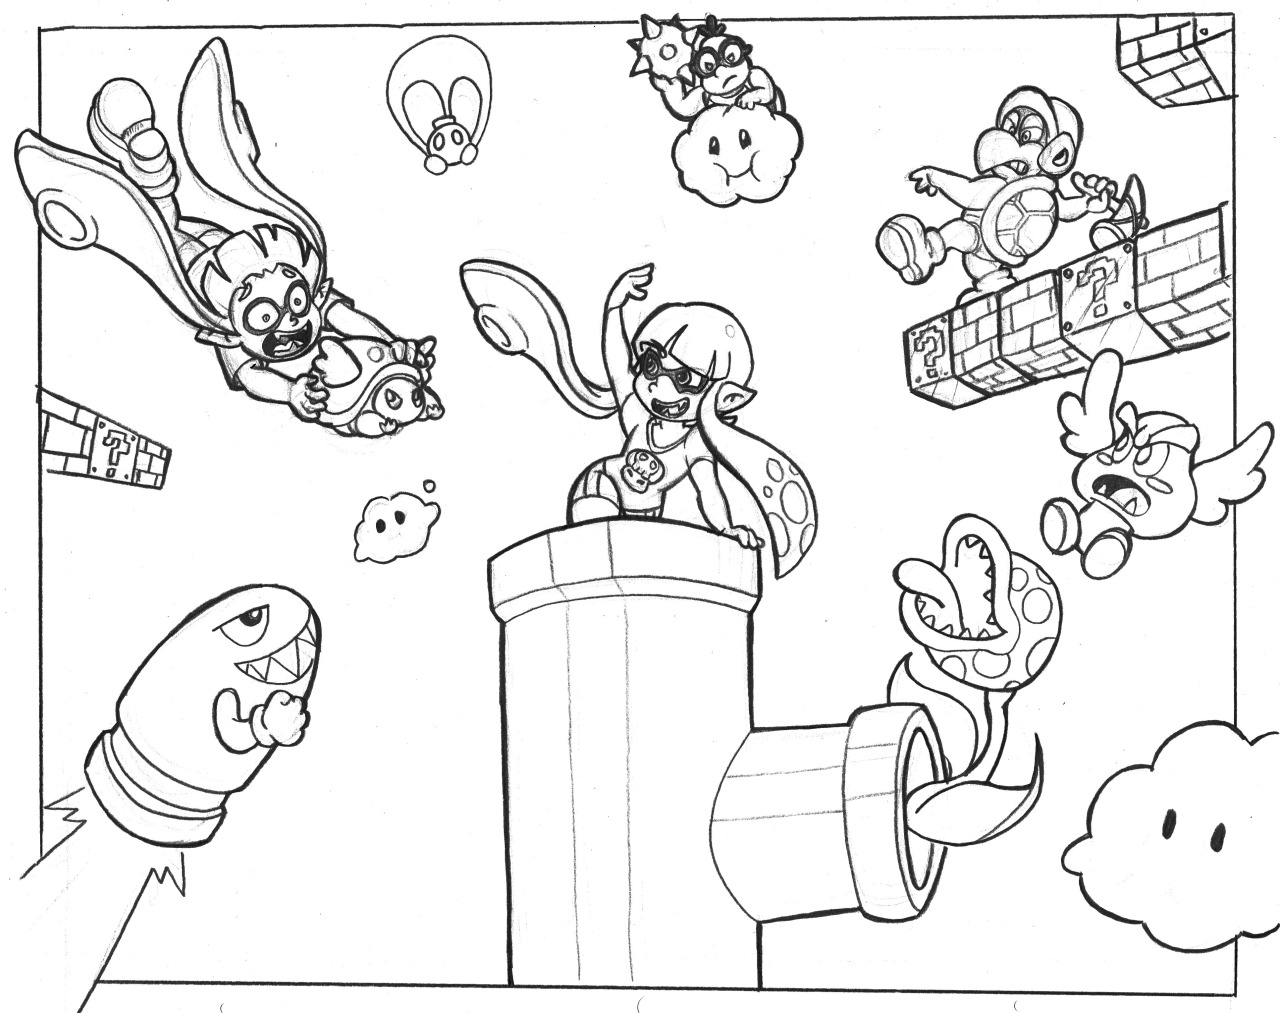 1280x1013 Coloring Book Maker Scott Fay Coloring Page Maker Coloring